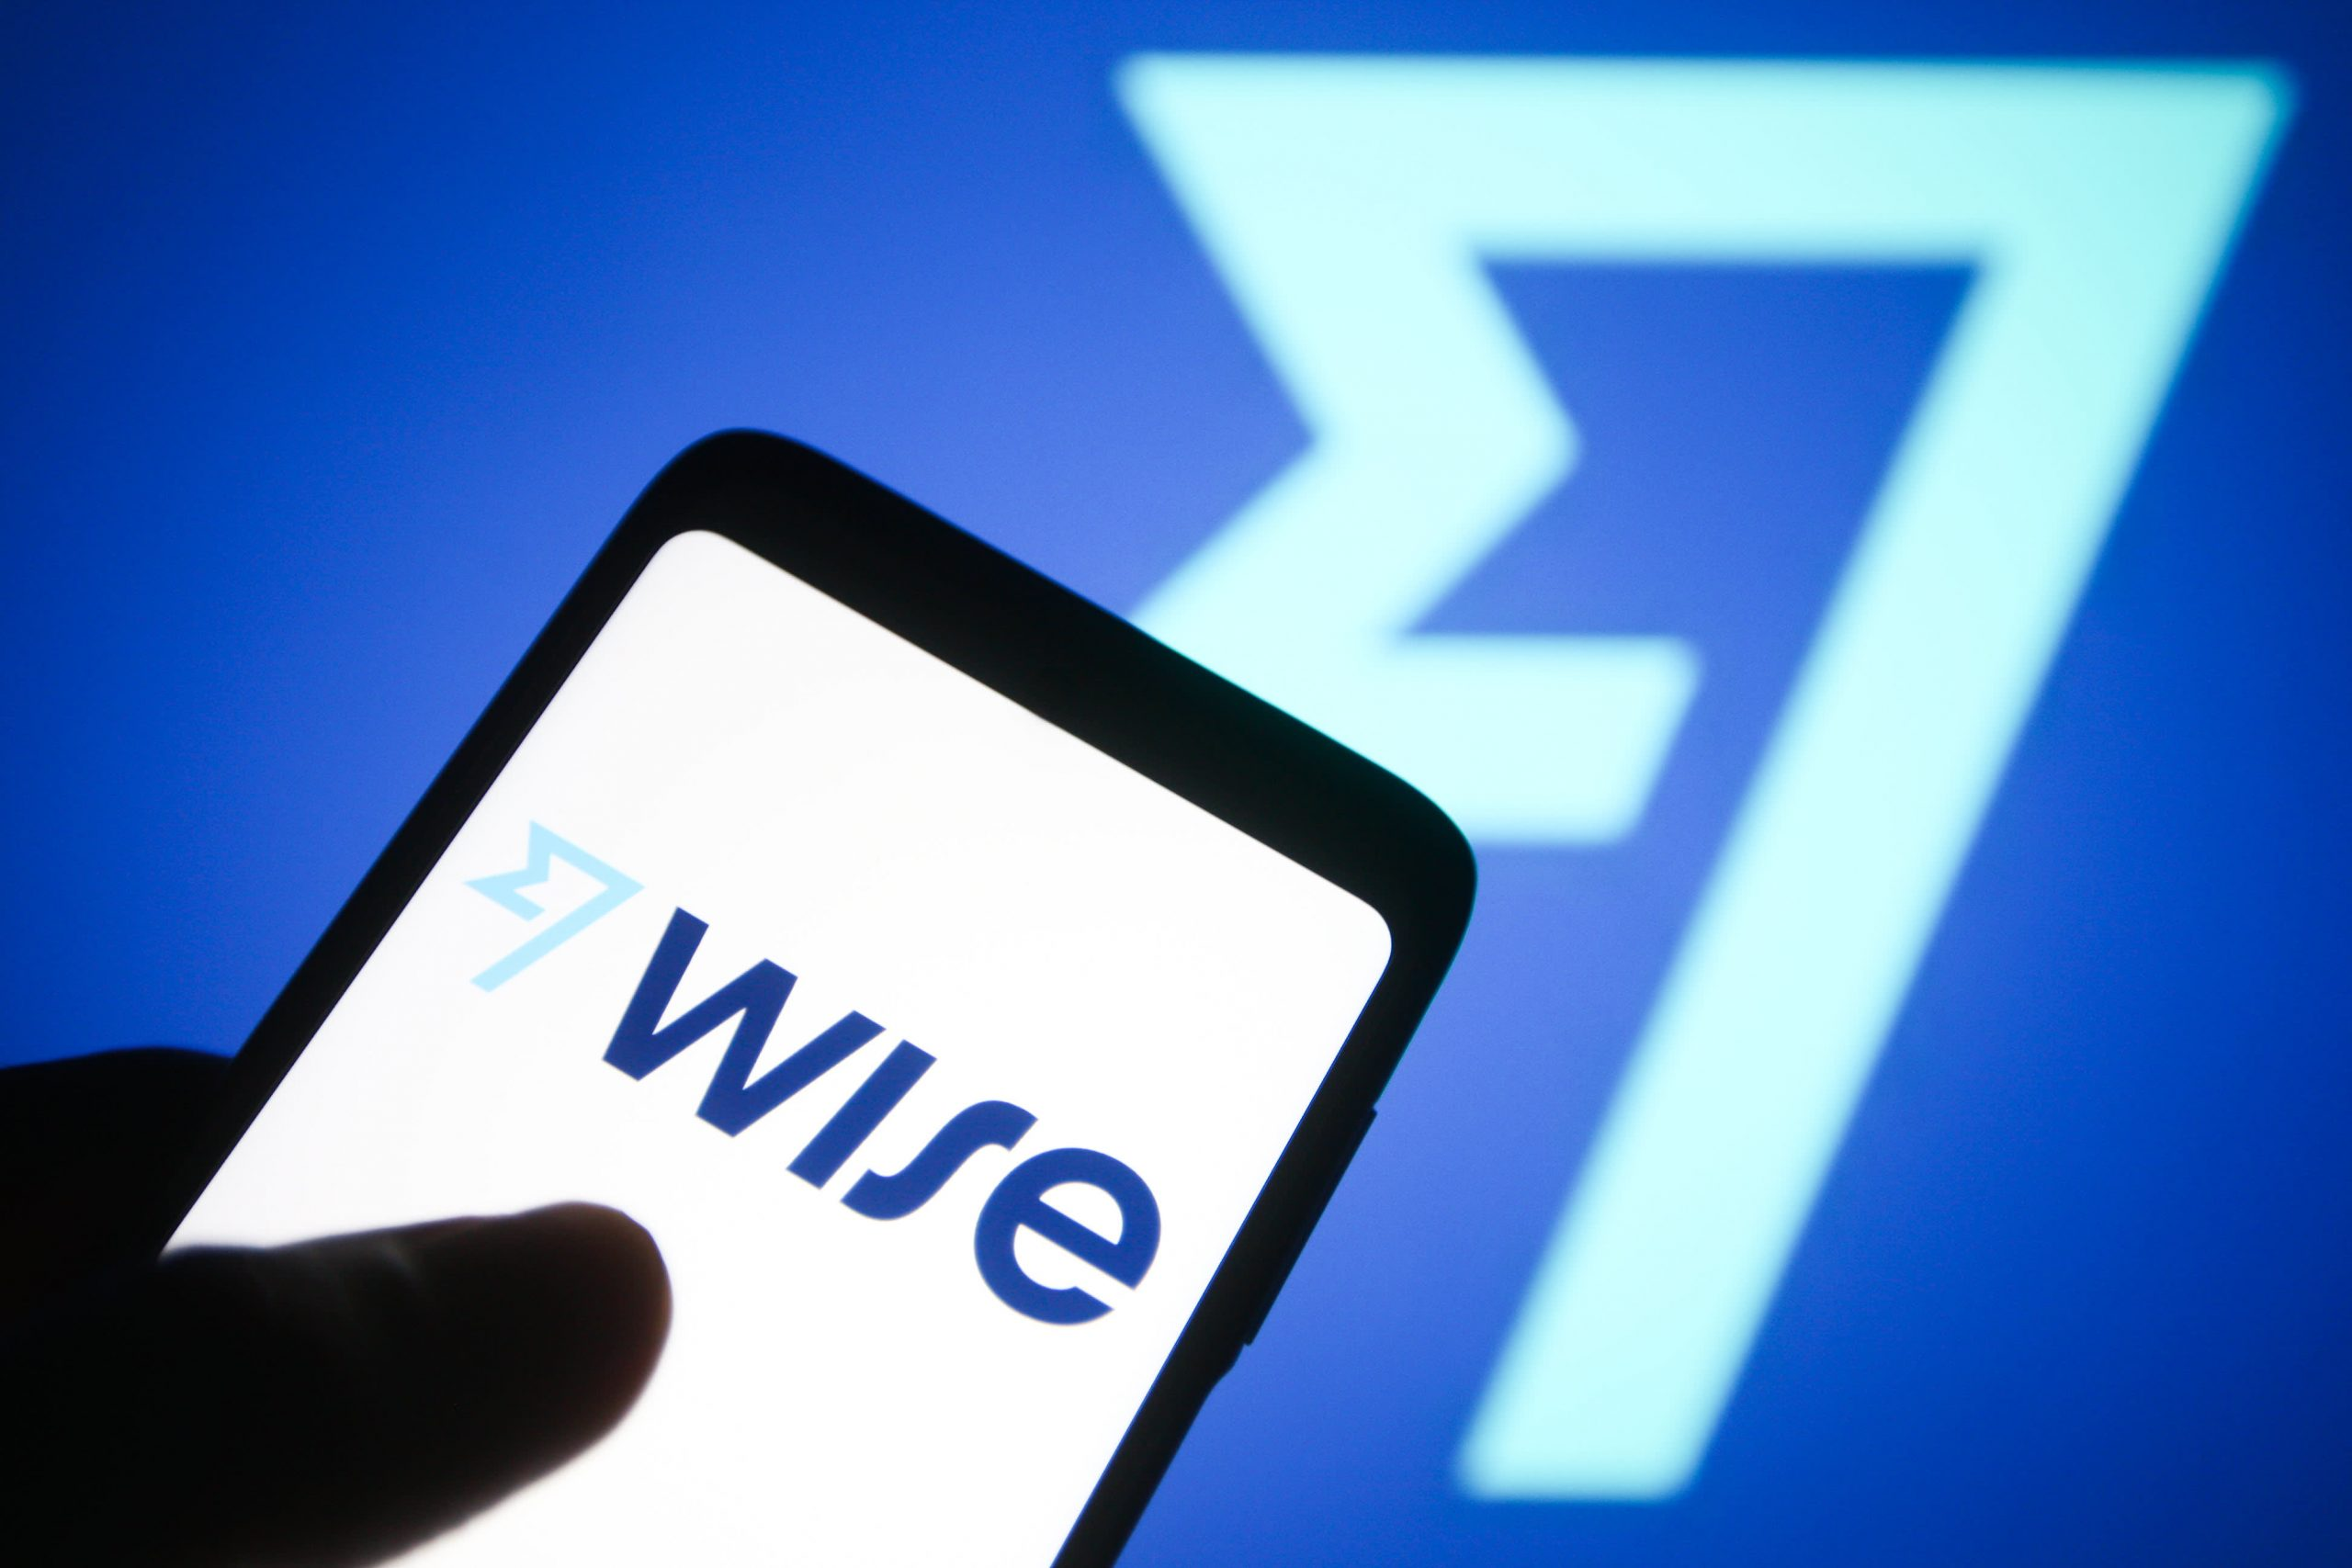 Wise debuts in rare London direct listing, valuing fintech giant at $11 billion